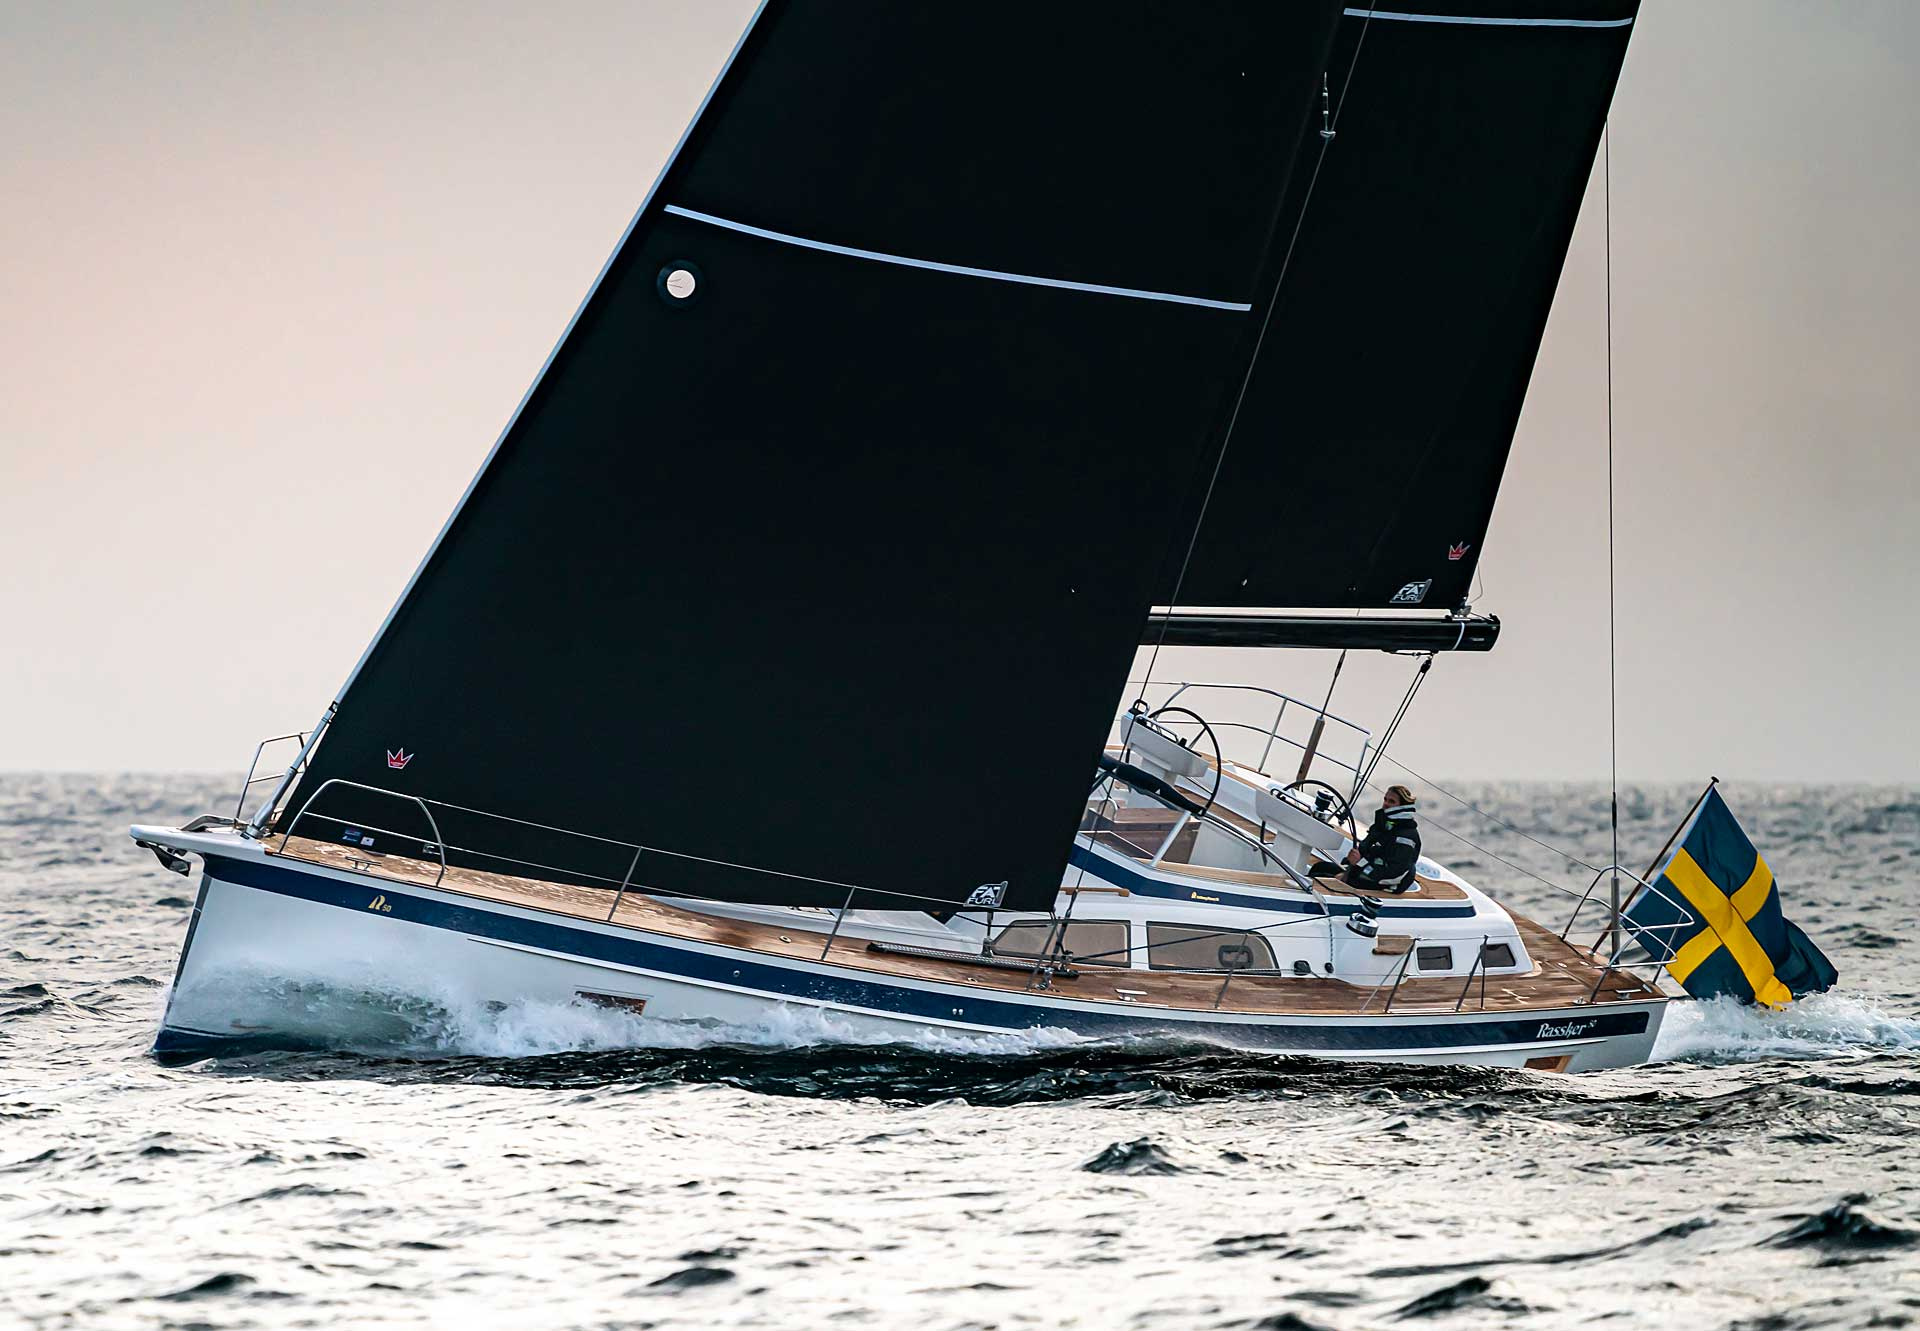 Exterior and sailing photos of the all-new Hallberg-Rassy 50